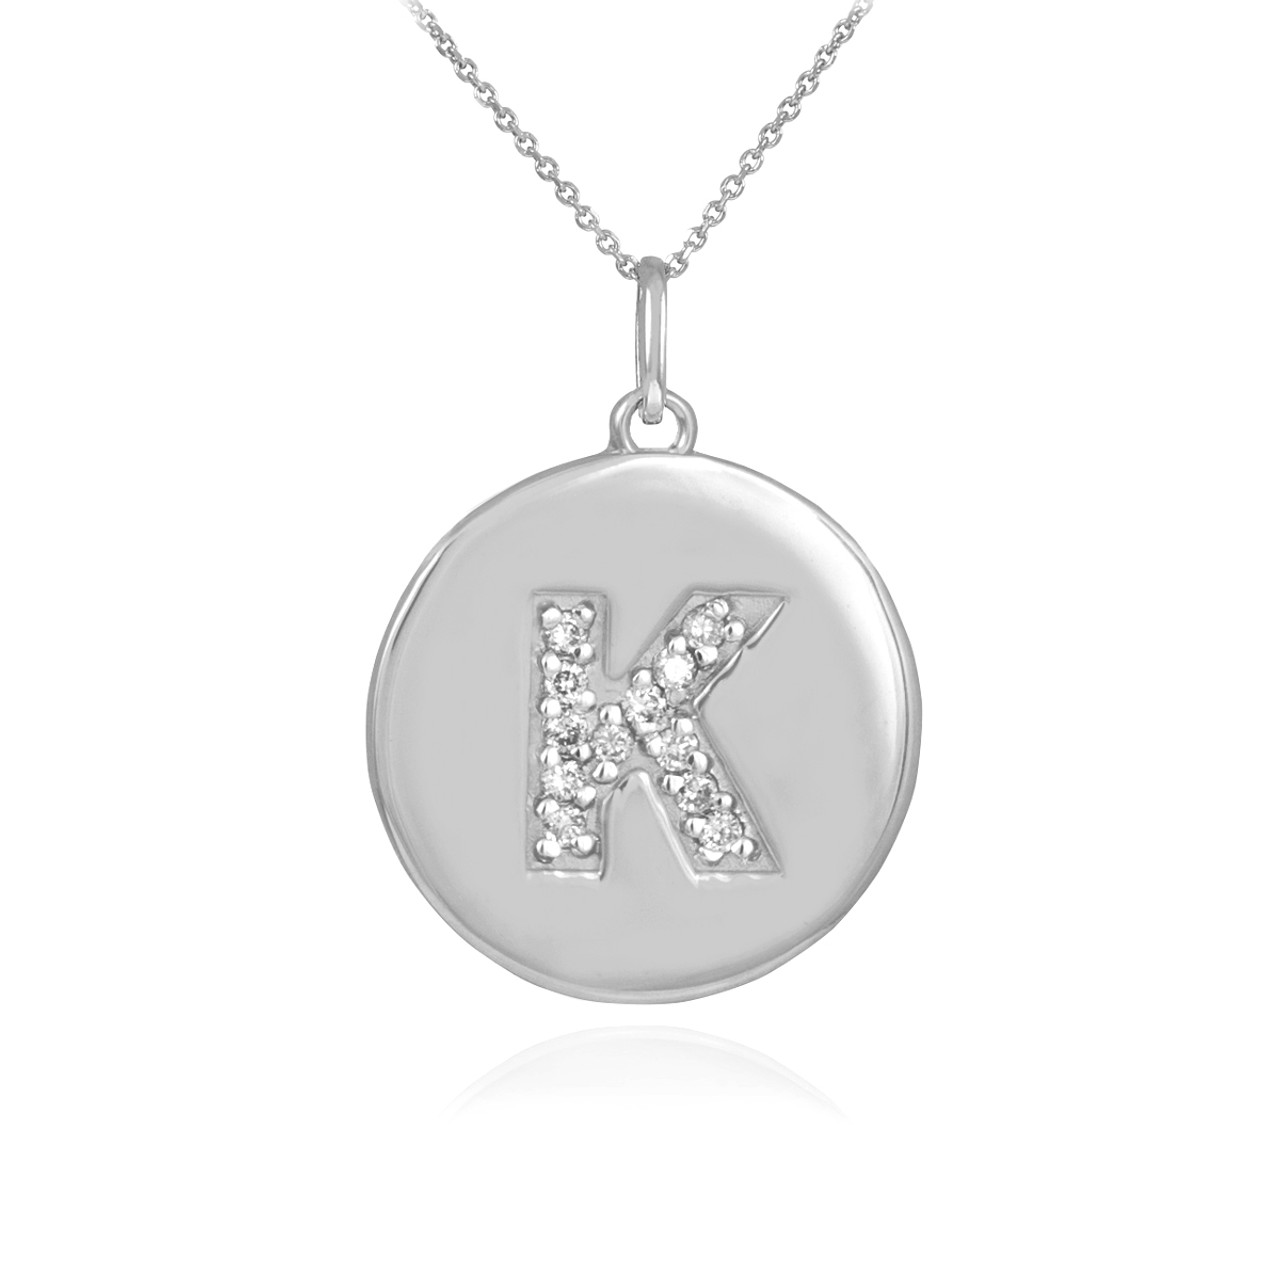 Initial k disc necklace initial k disc pendant white gold letter k disc pendant necklace with diamonds in 10k or 14k white aloadofball Gallery